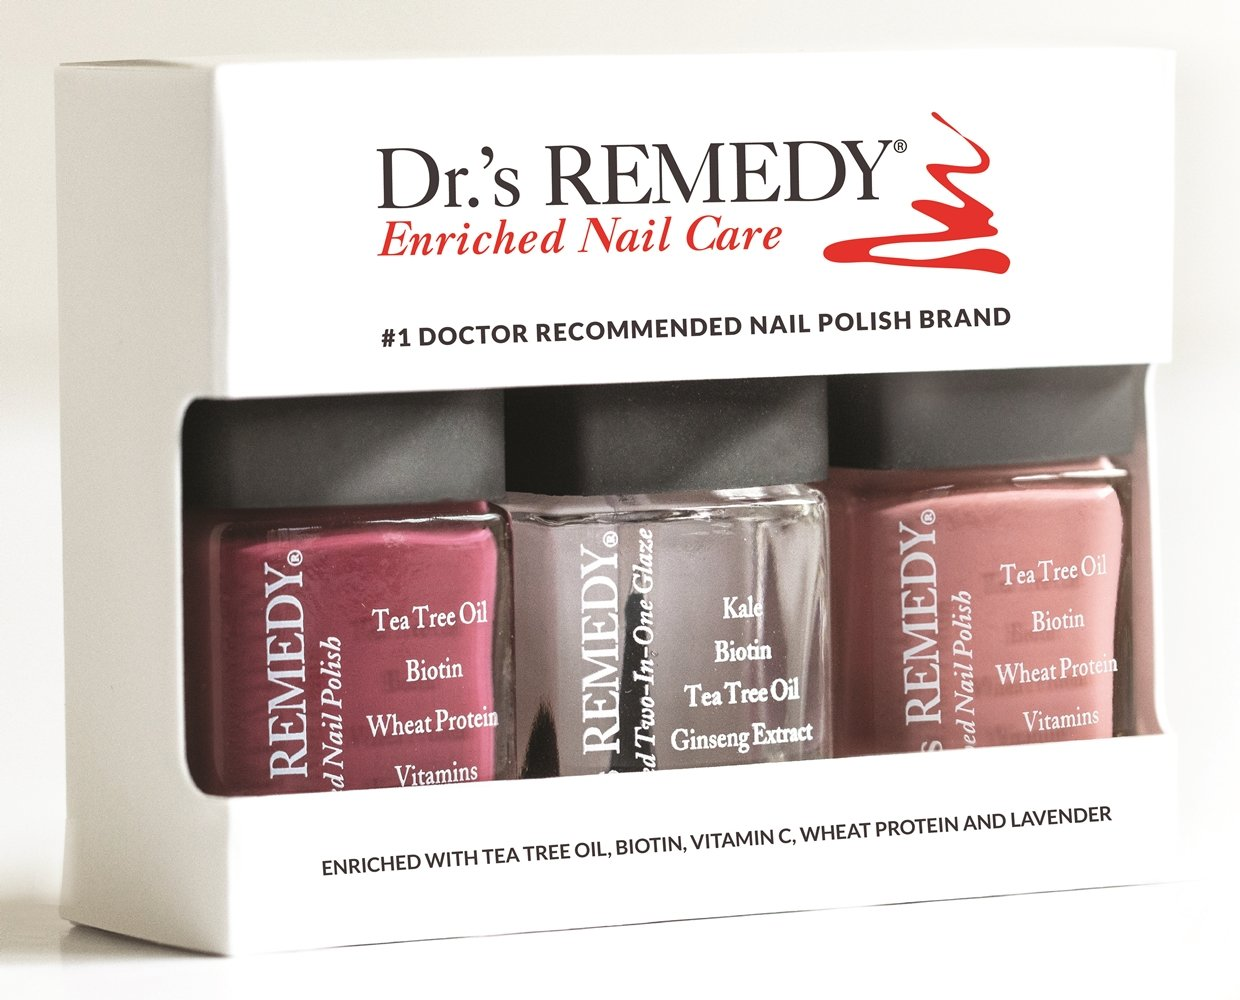 Dr.'s REMEDY Enriched Nail Polish, ANNIVERSARY 3Piece Boxed Set, Brave Berry/Resilient Rose